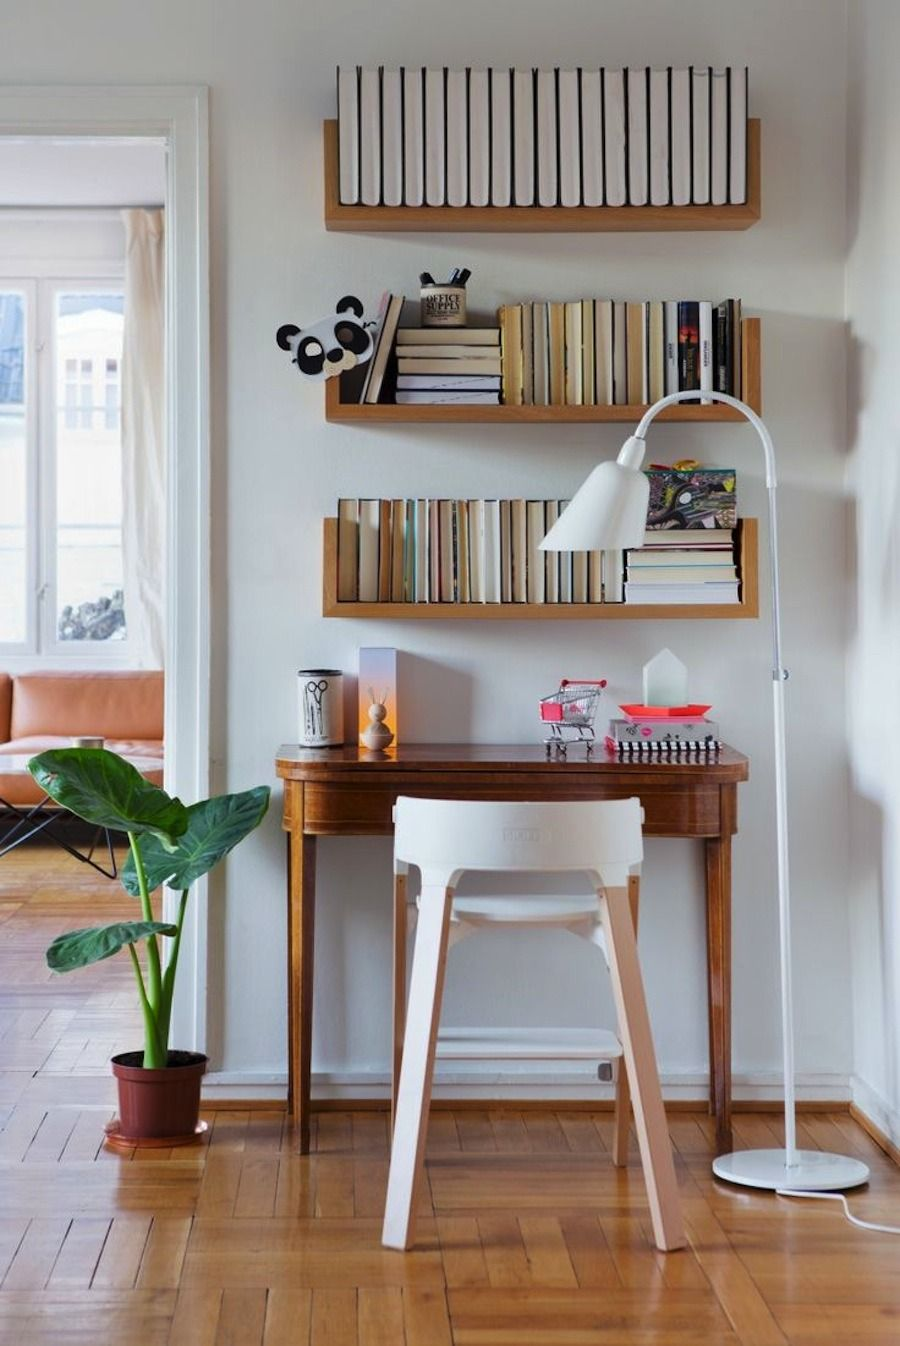 bookshelf above desk storage idea decor small home offices floating shelf over dark wood bookcase diy full wall shelves ornate wooden wrought iron brackets decorative for living